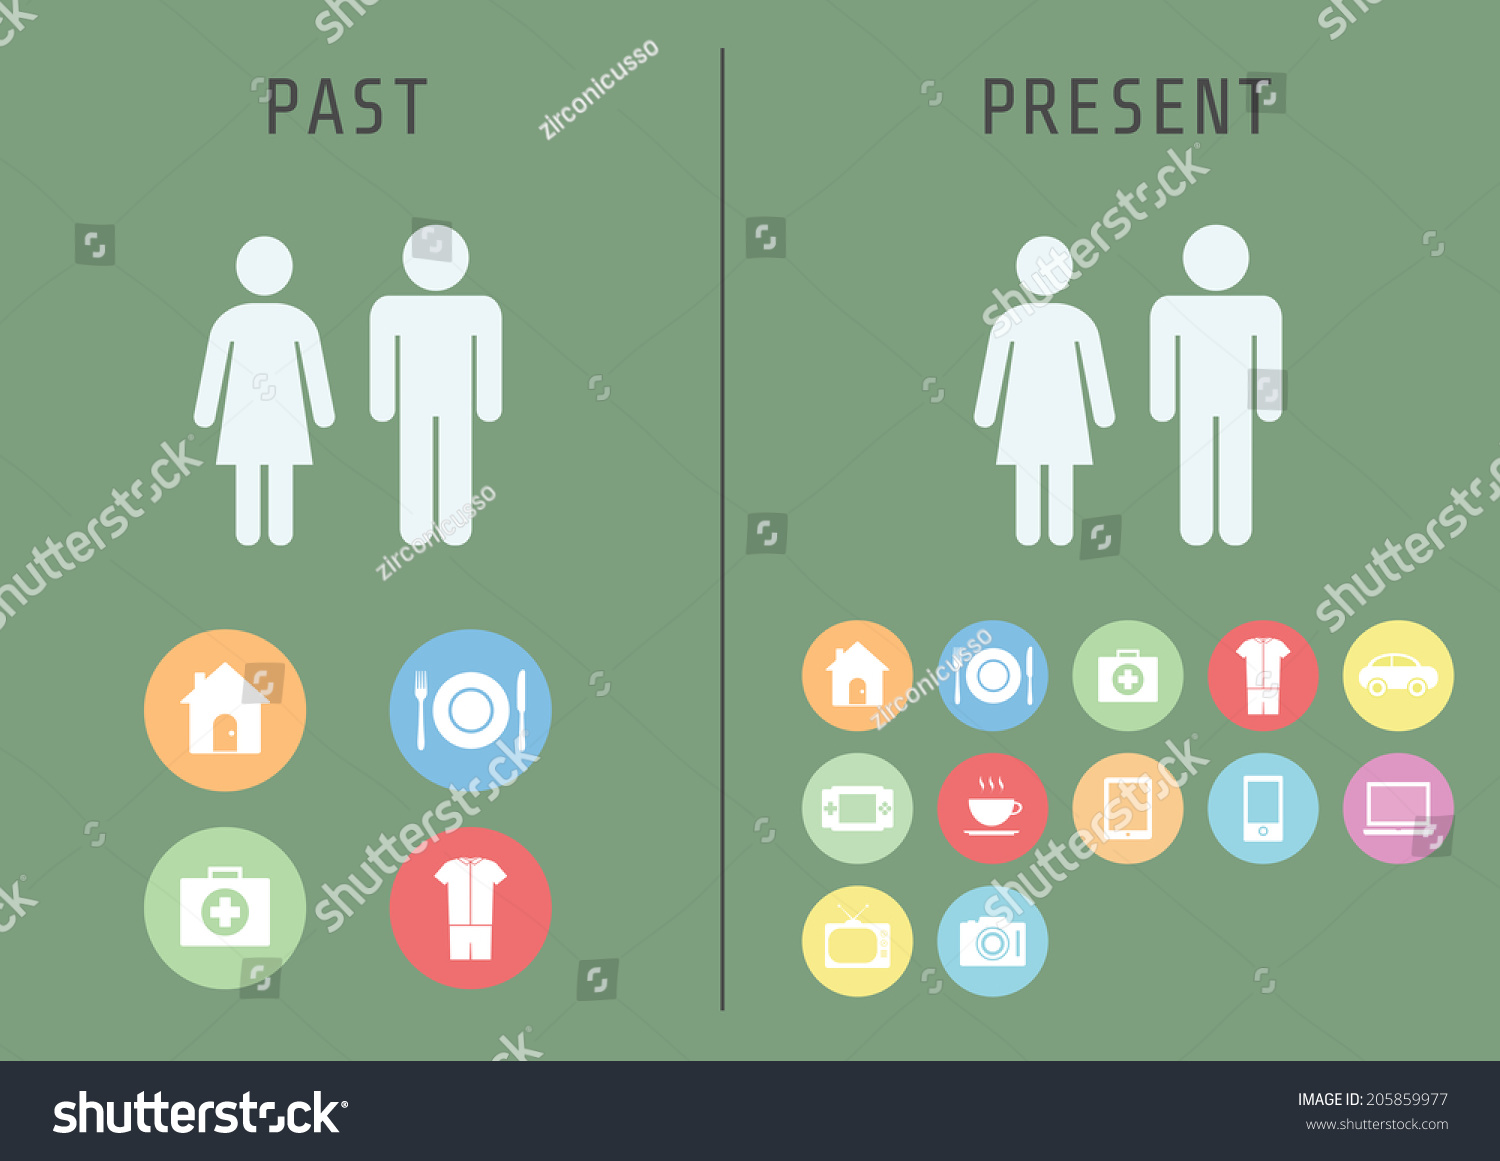 Past To Present Basic Human Needs Is Different Flat